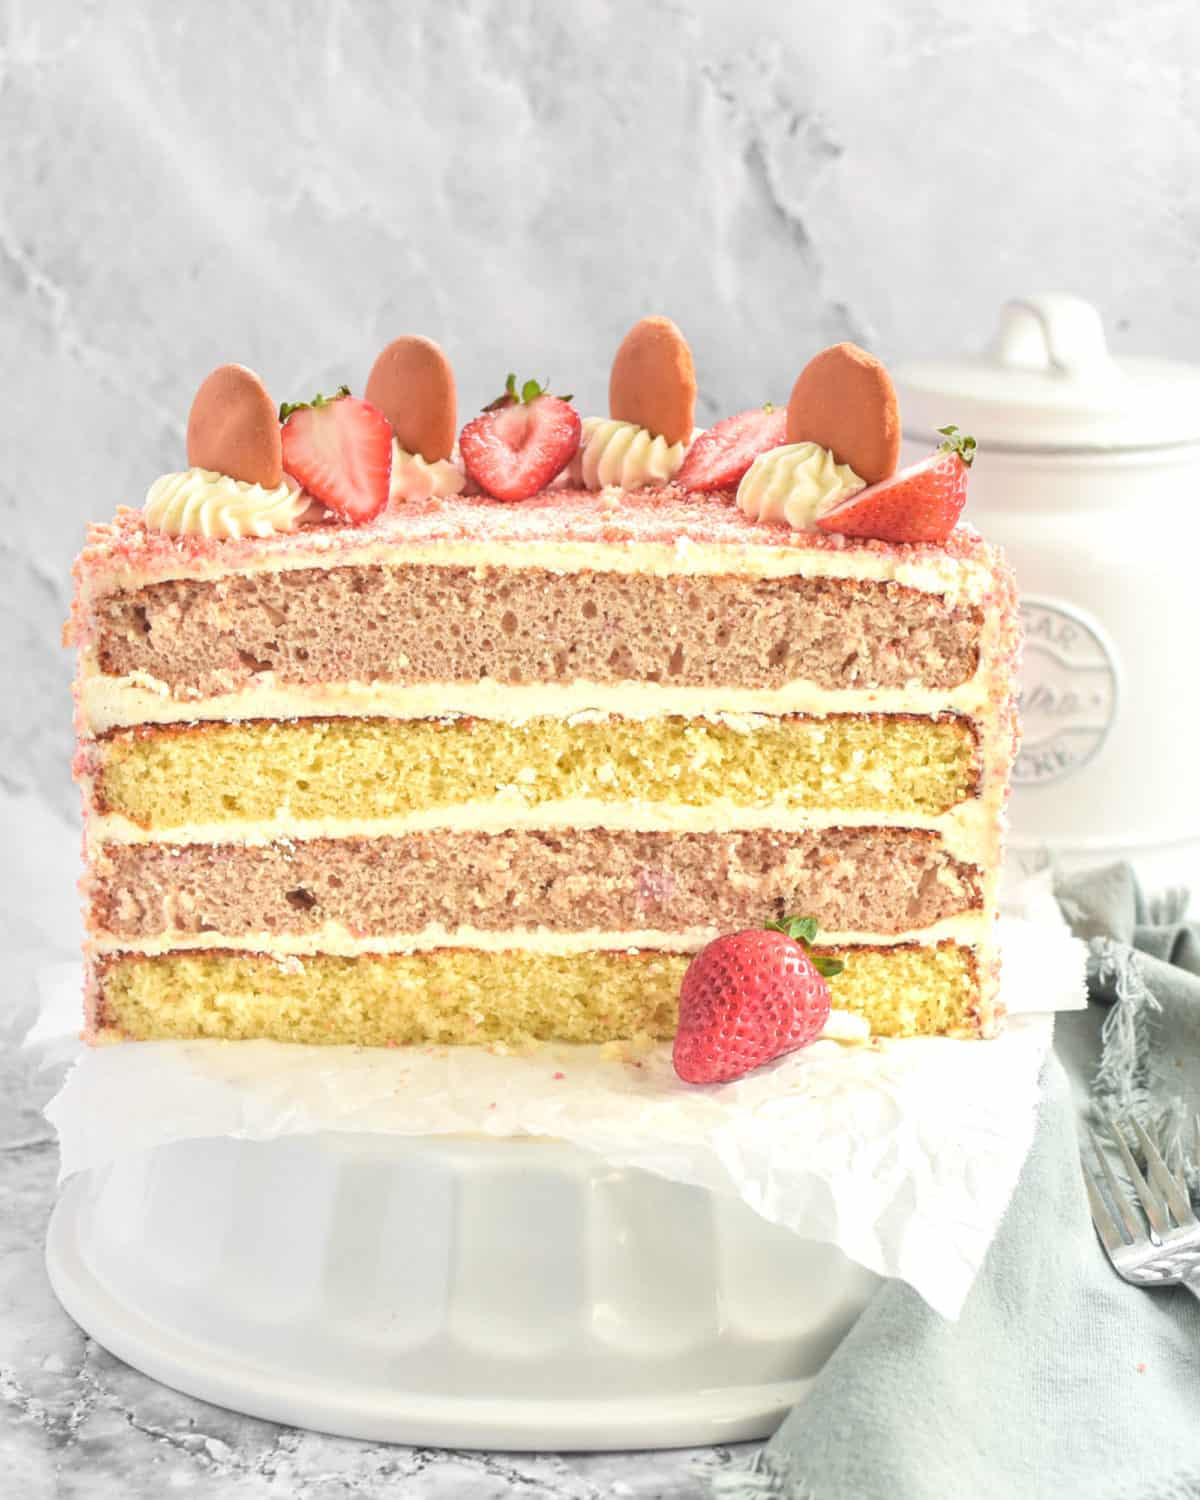 Showing the layers inside a strawberry cake.